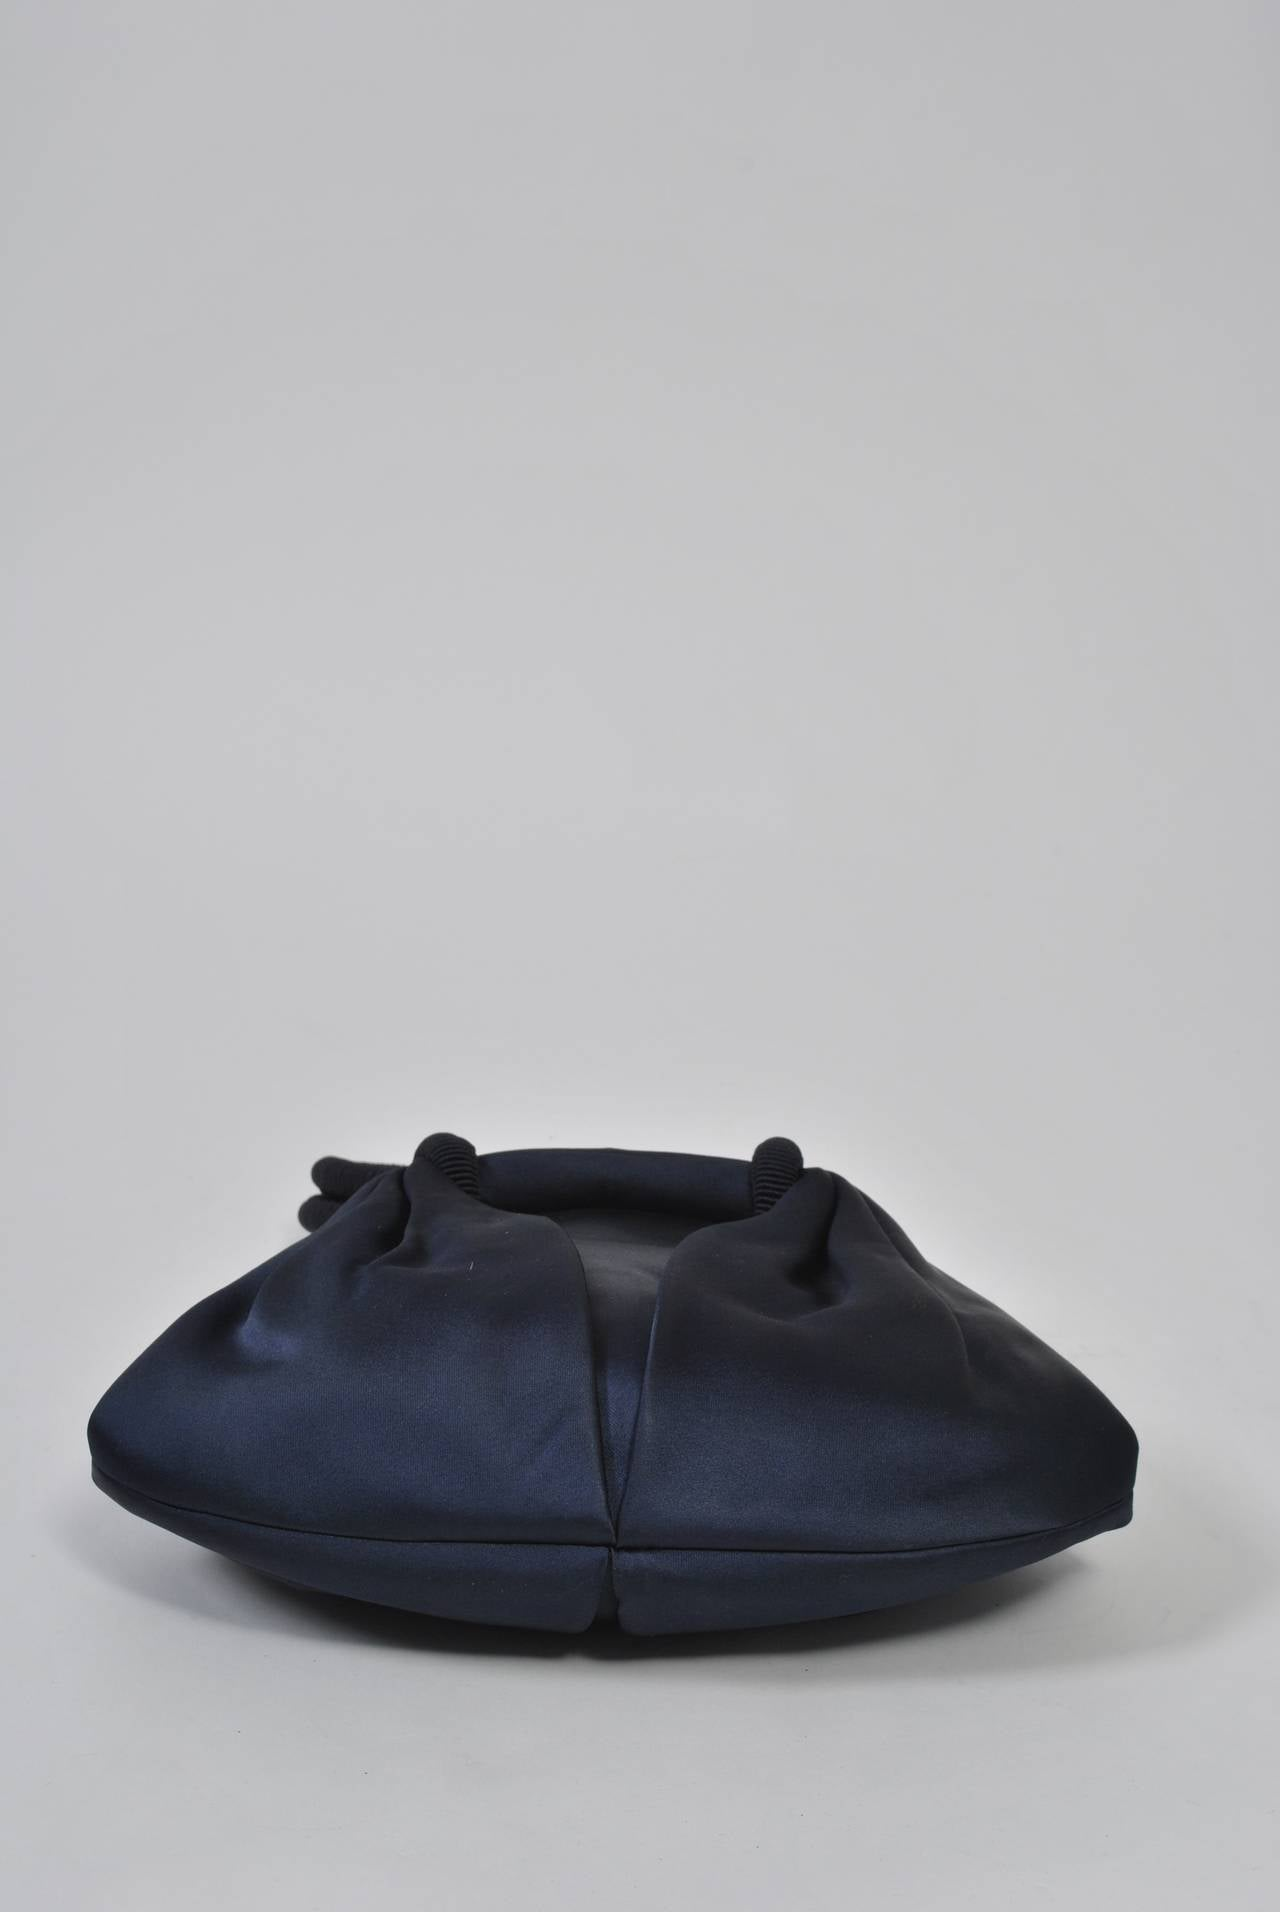 Navy Satin Purse with Tortoise Kiss Clasp, Paris 6